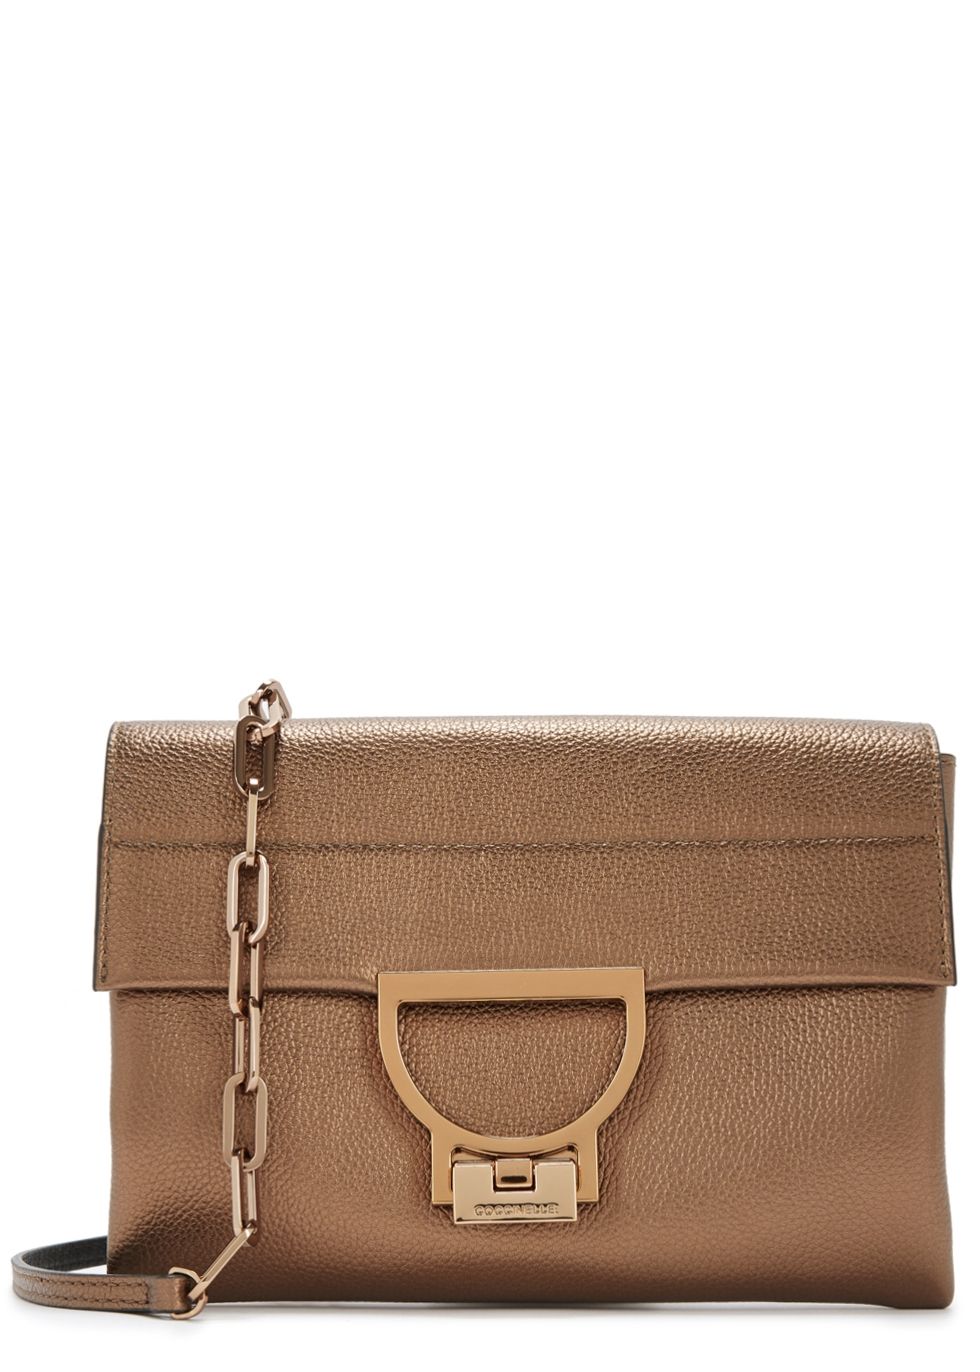 COCCINELLE ARLETTIS BRONZE LEATHER CROSS-BODY BAG